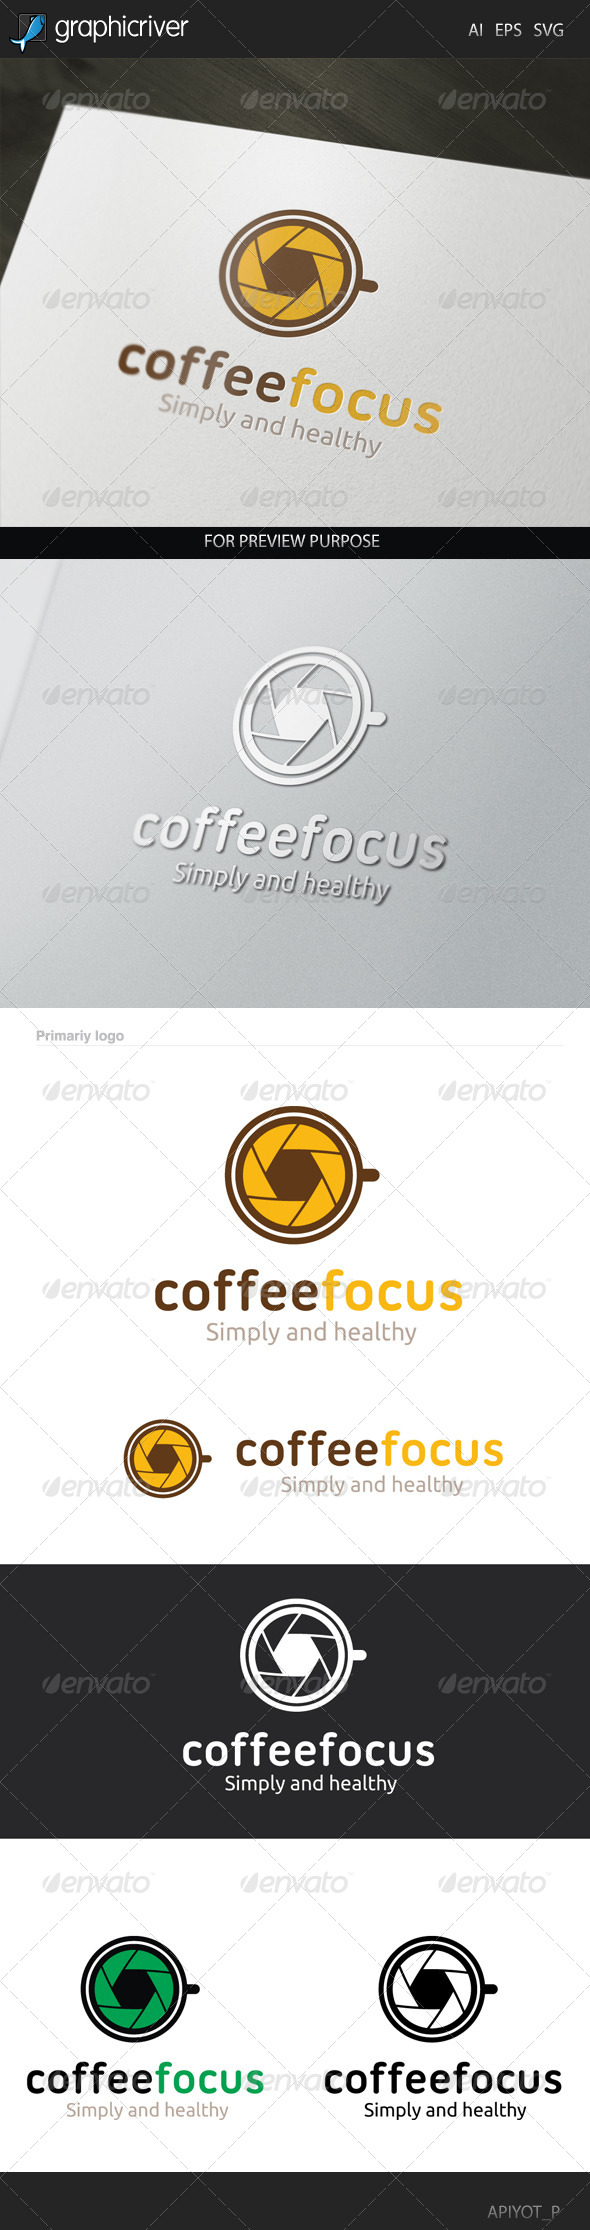 GraphicRiver Coffee Focus Logo 8514716